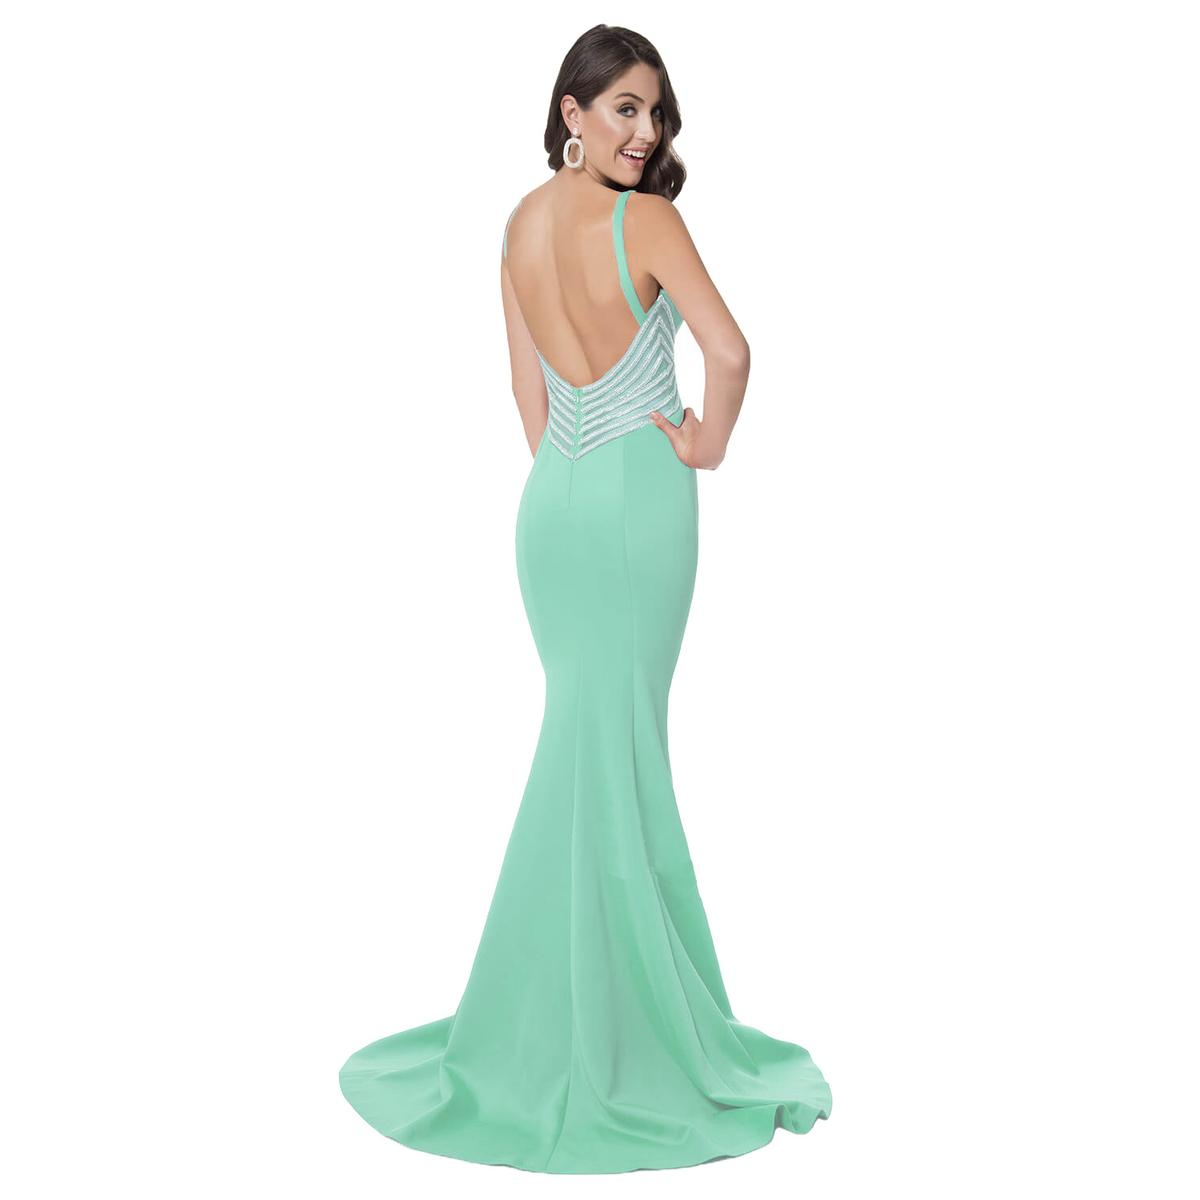 fe96ff05991 Terani Couture Beaded Illusion Promt Formal Dress Gown BHFO 9966